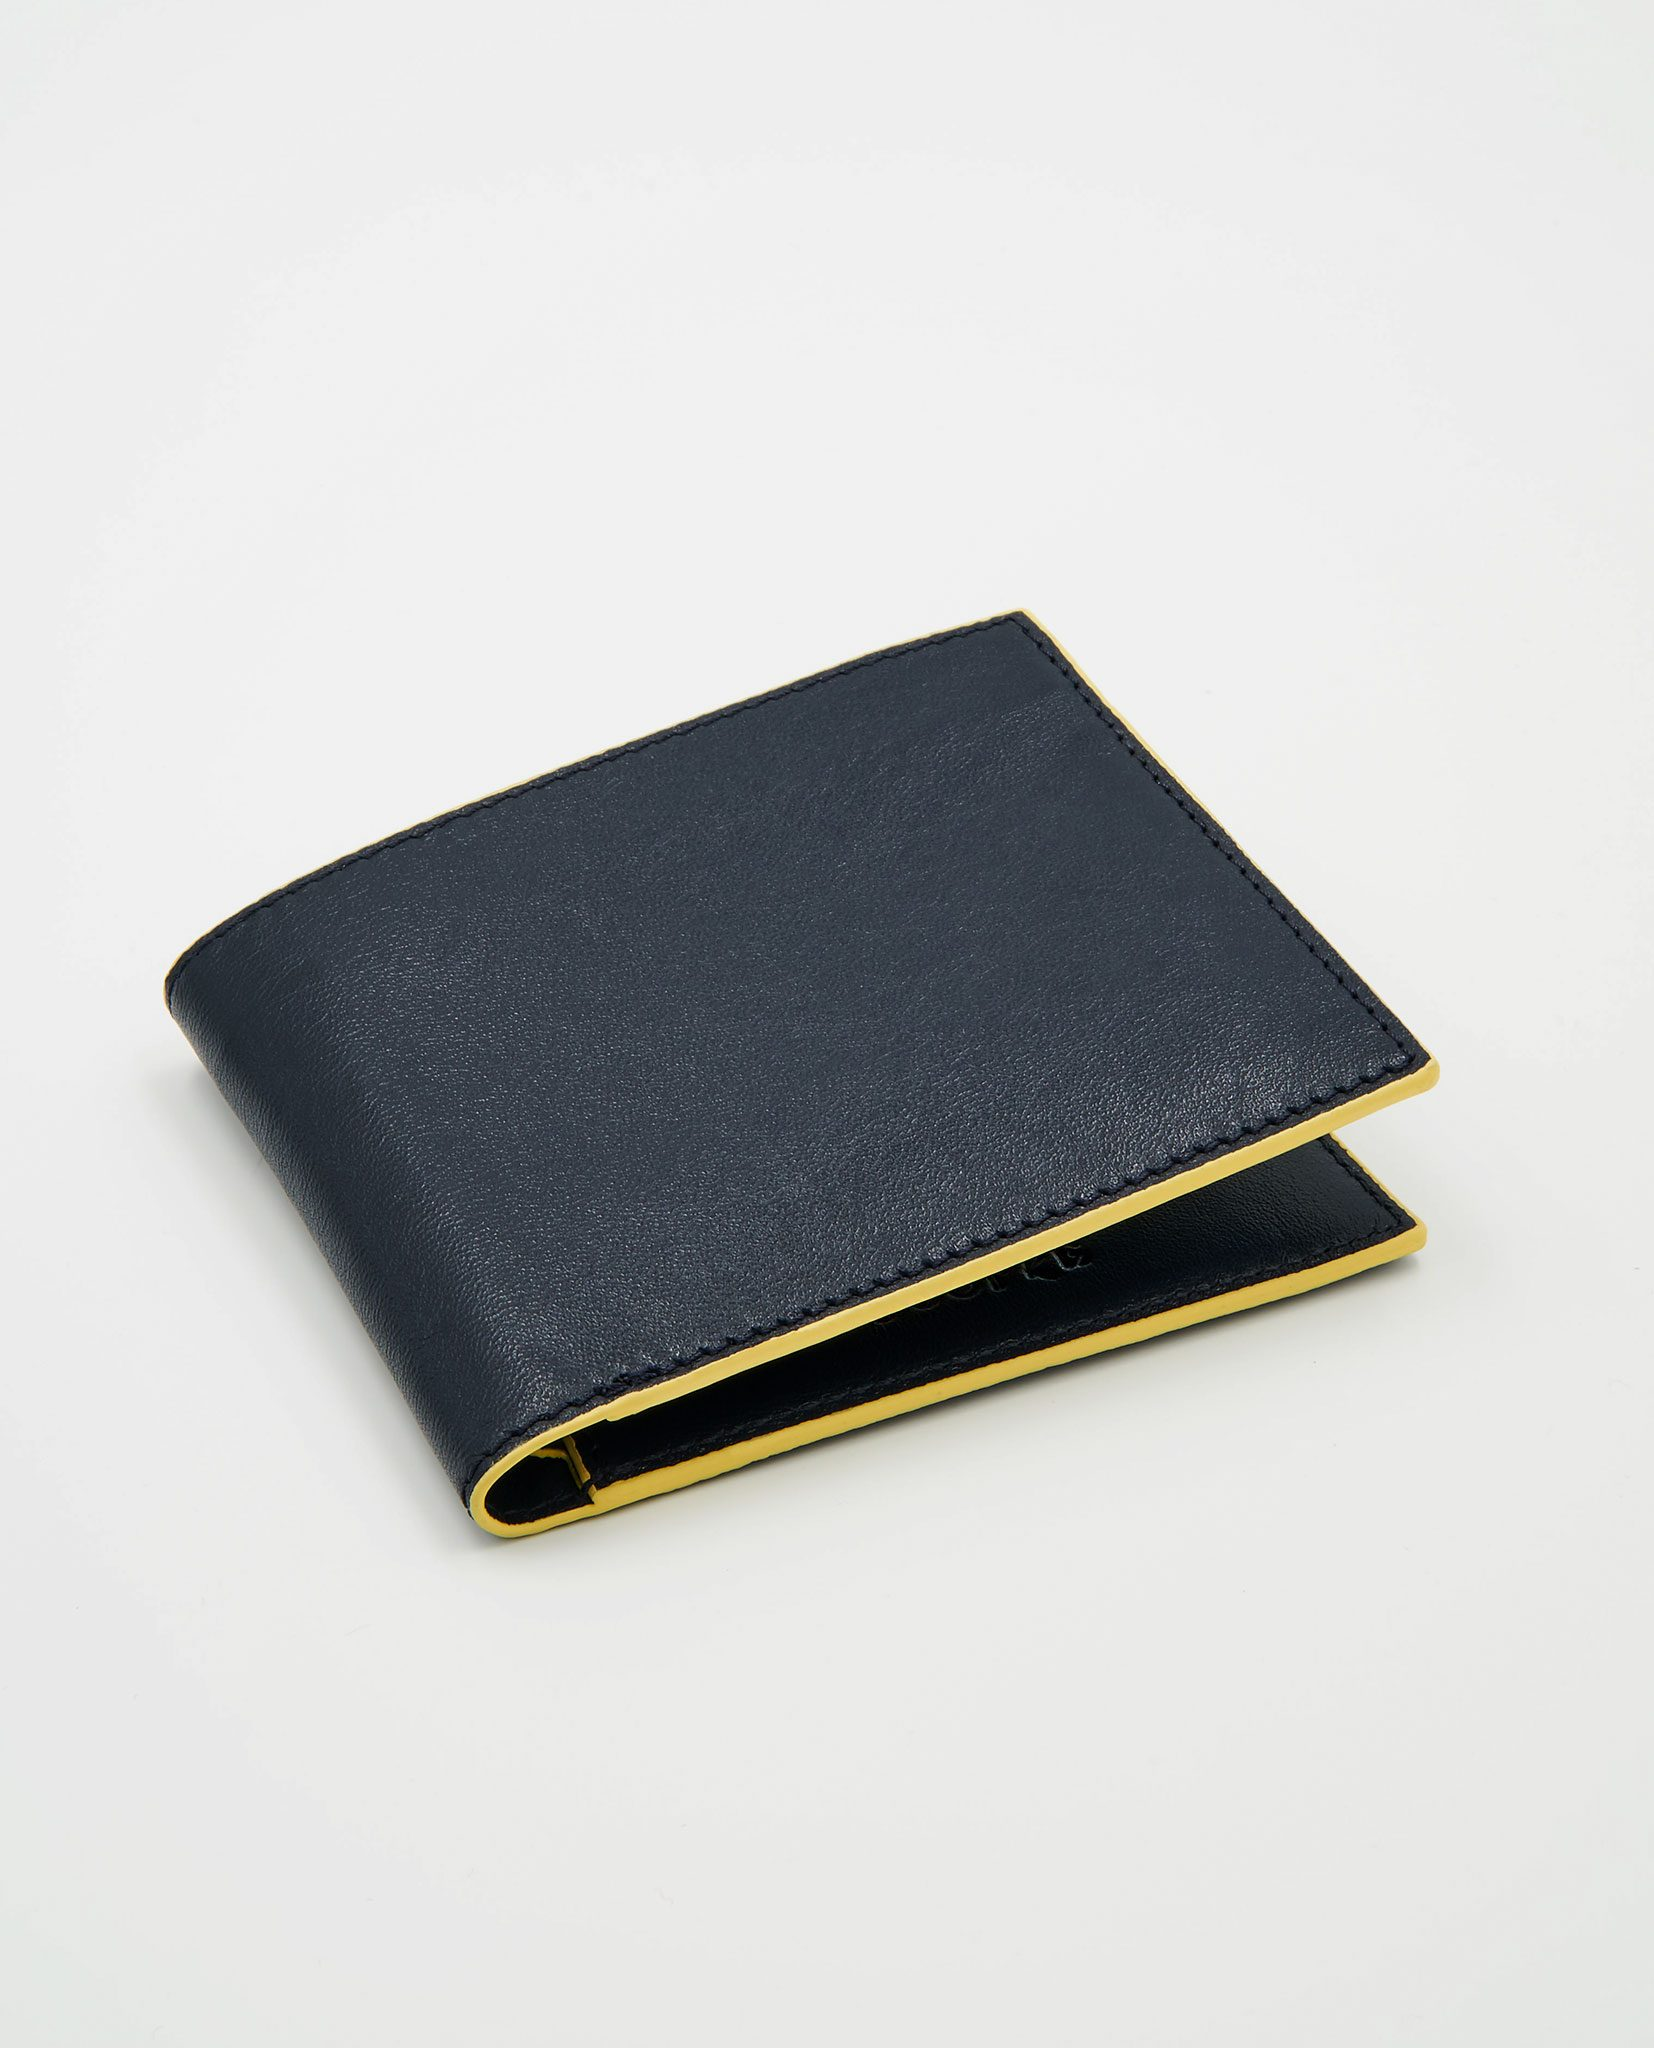 Soofre Men's Wallet Soft Leather navy-yellow